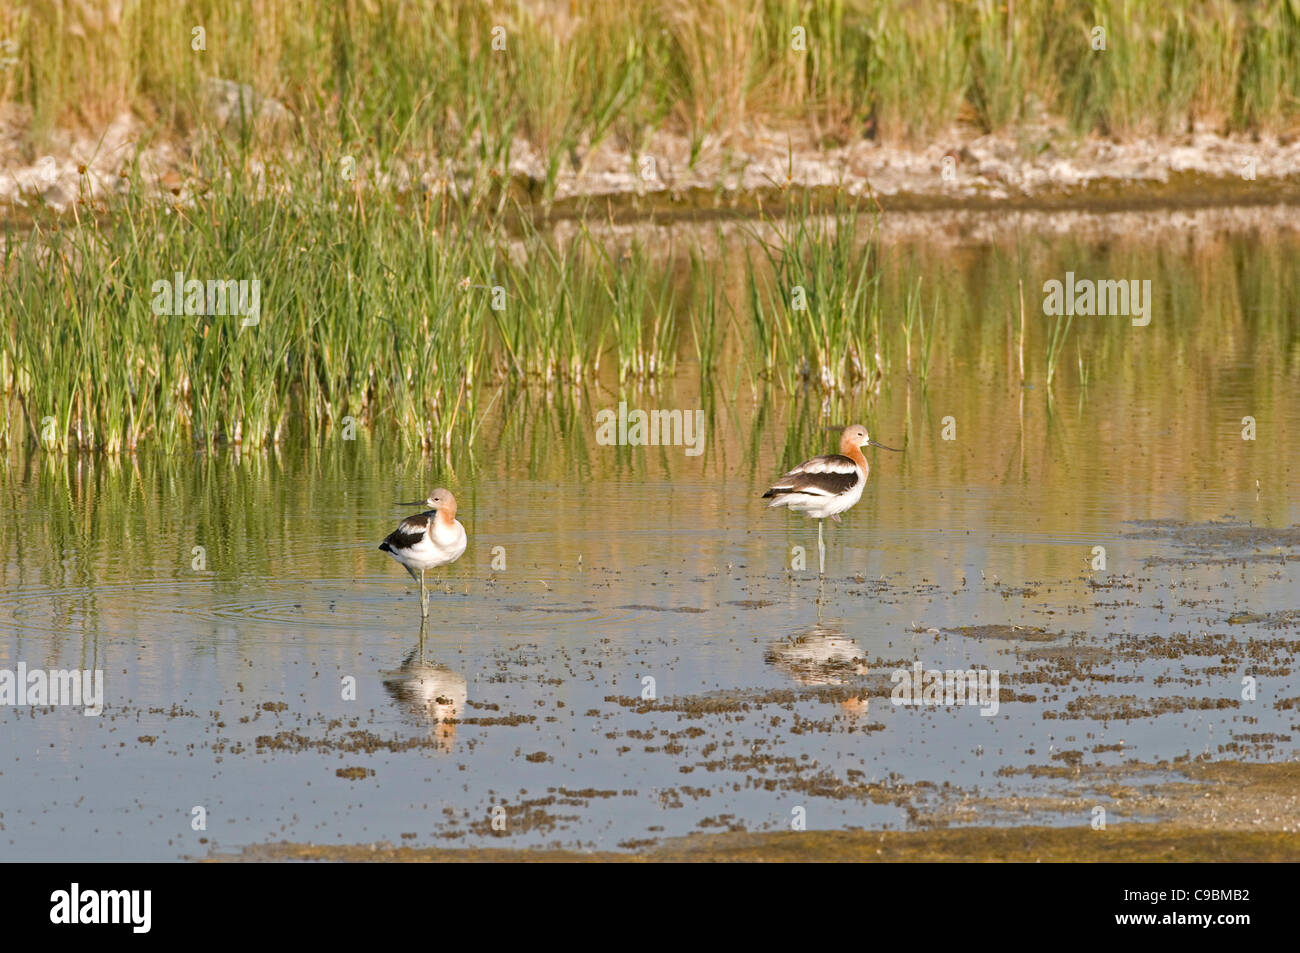 Canada, Alberta, Tyrrell Lake, American Avocet Recurvirostra americana, two birds standing on one leg in shallow Stock Photo